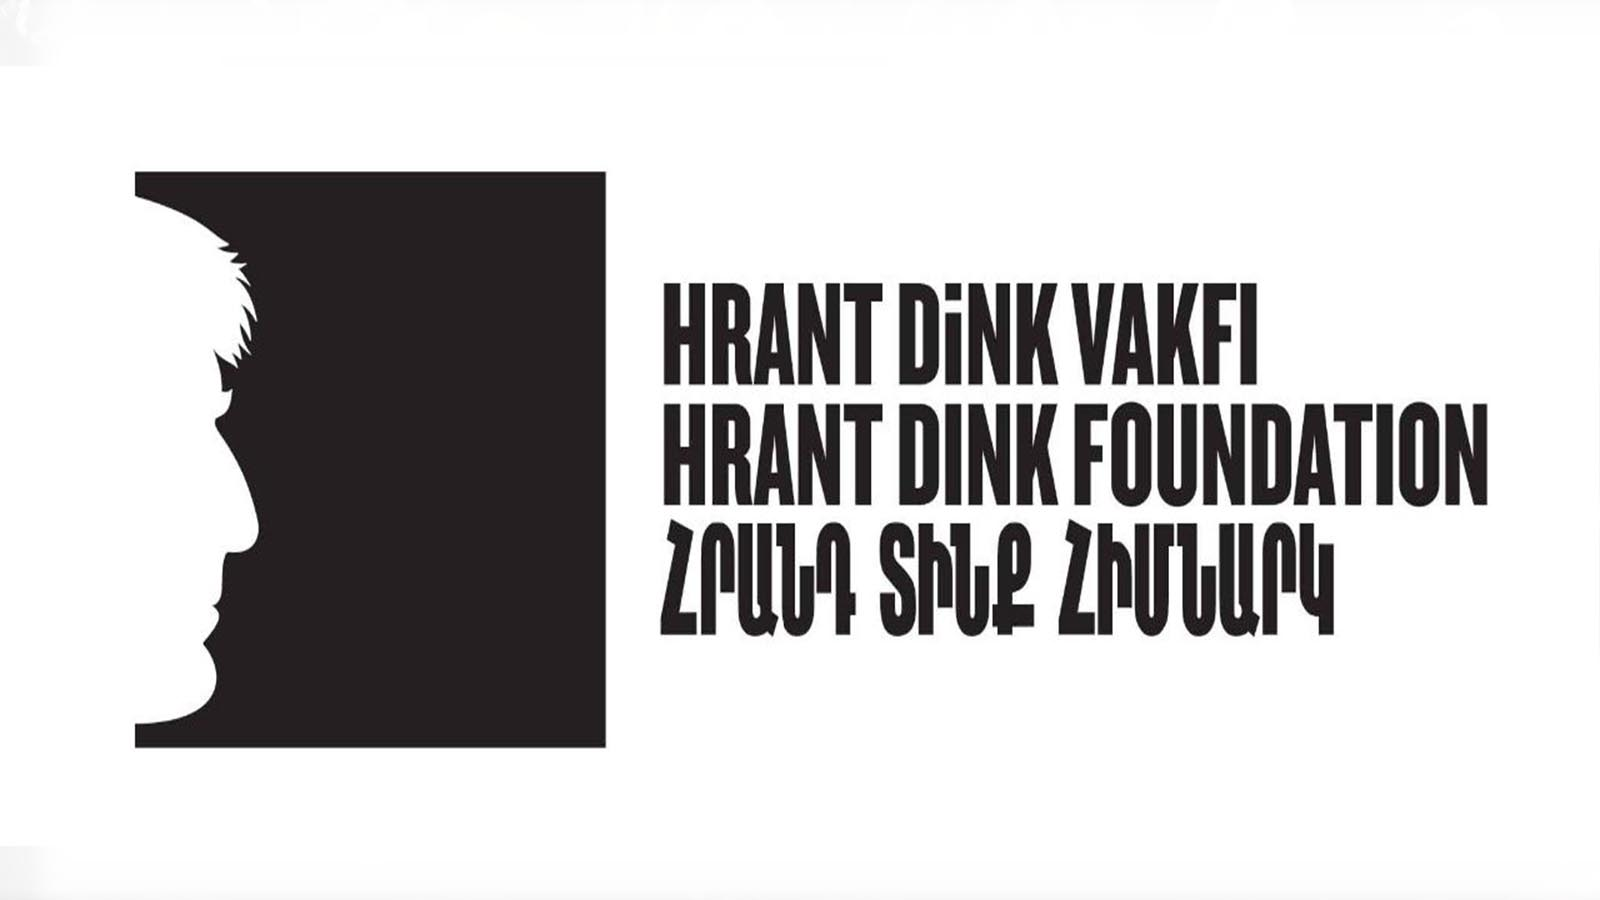 About the threat to the Hrant Dink Foundation